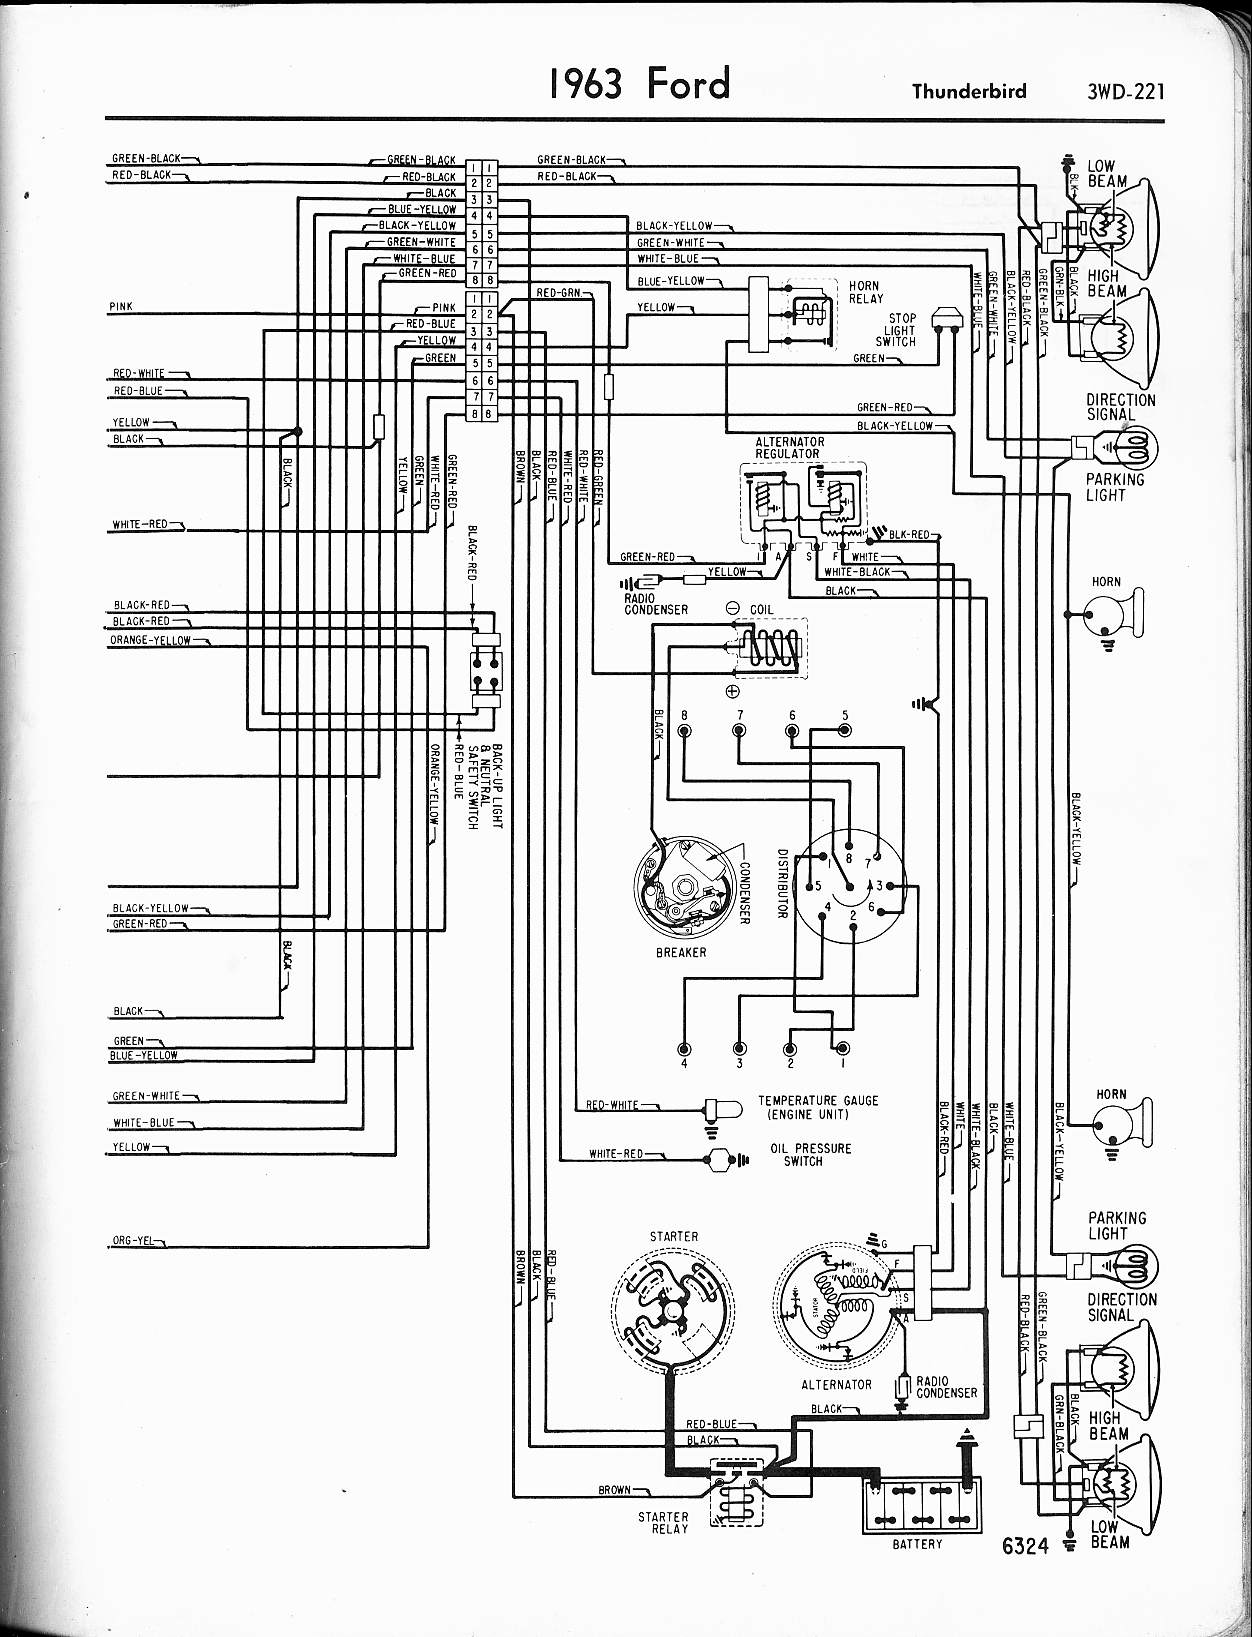 57 65 Ford Wiring Diagrams Jeep Cj5 Turn Signal Diagram 1963 Thunderbird Right